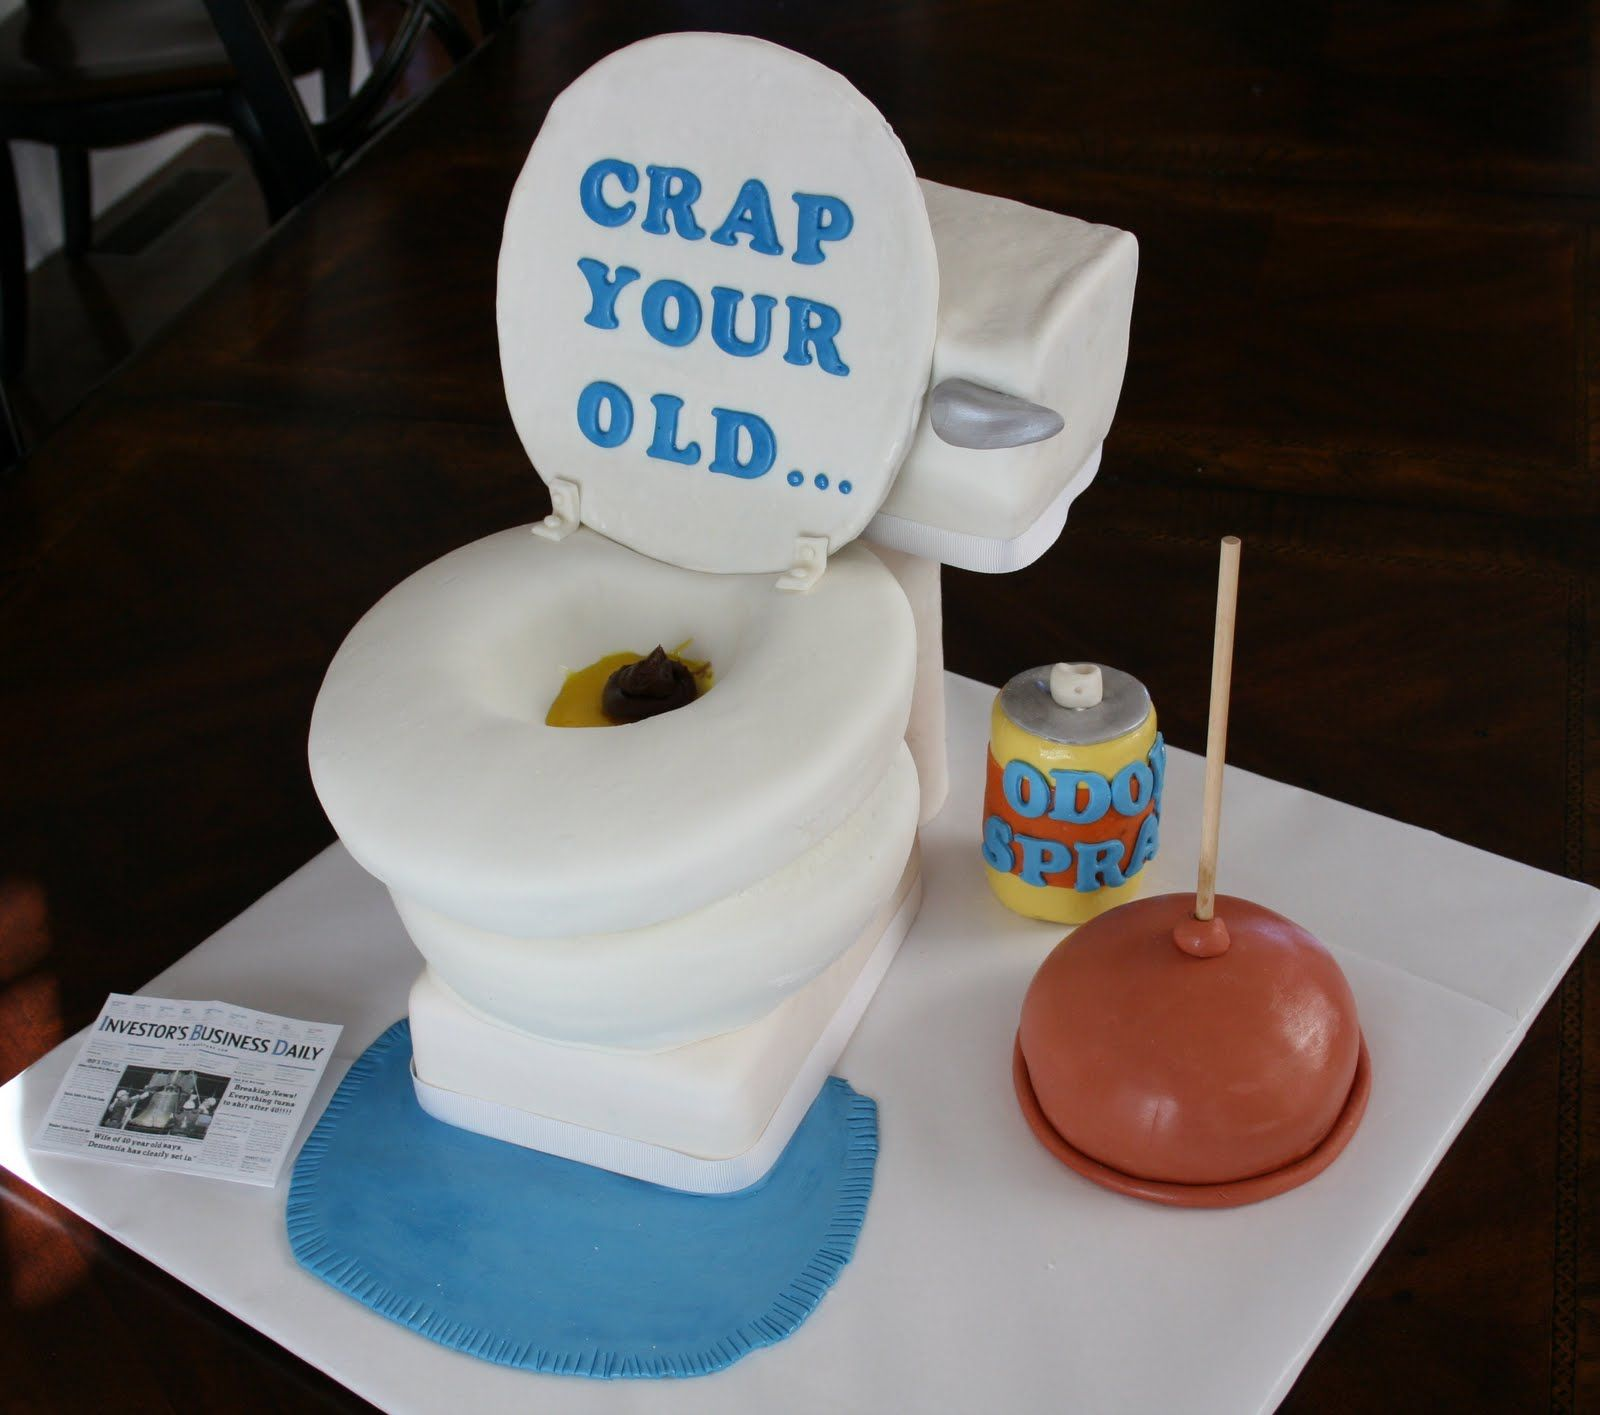 OMG I wanna make this for my step dad LOL he is a plumber